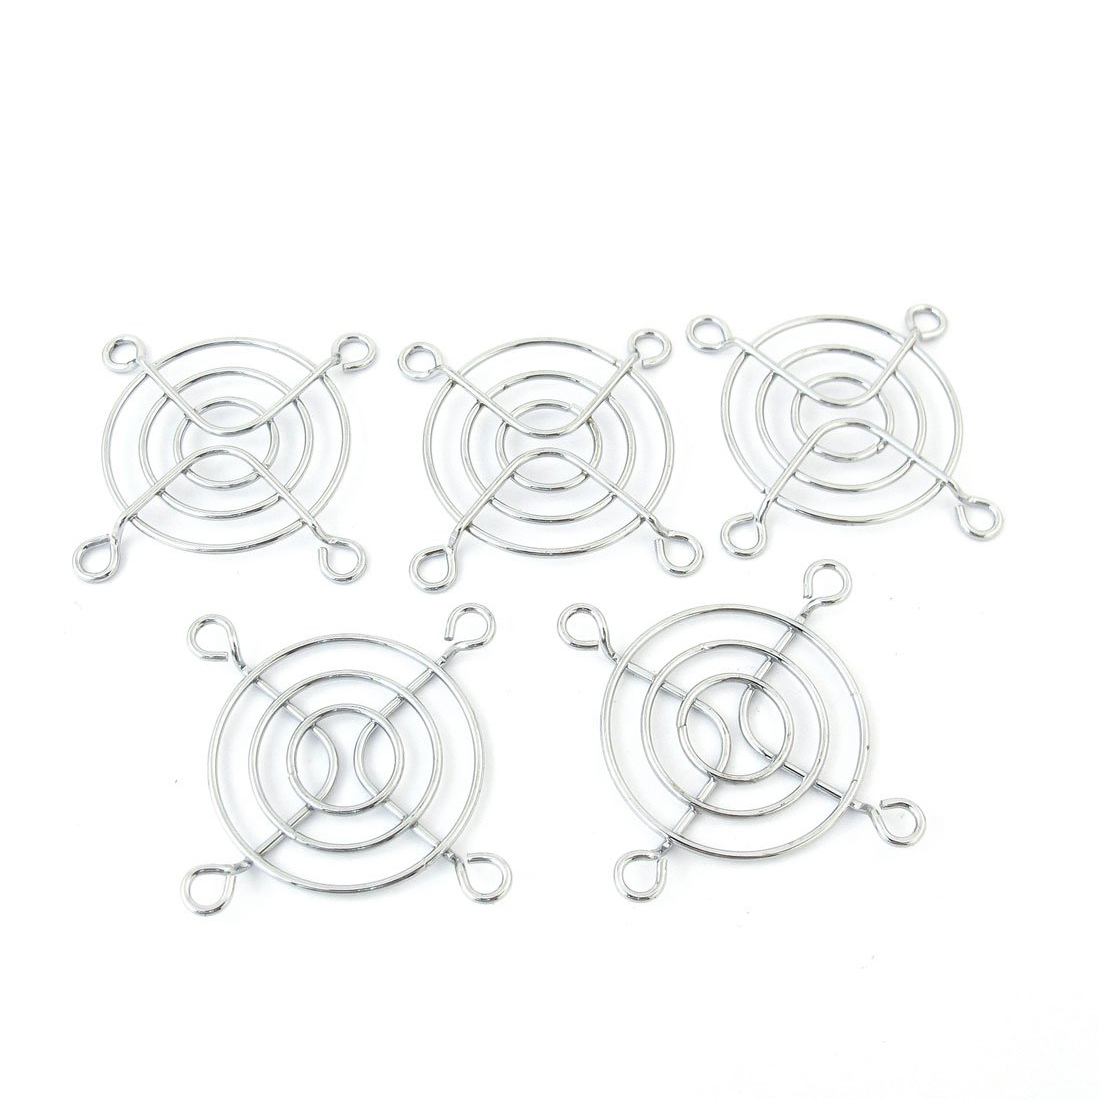 YOC-5 pcs 4cm Diameter Axial DC Fan Grill Metal PC Finger Guard Protector(China (Mainland))